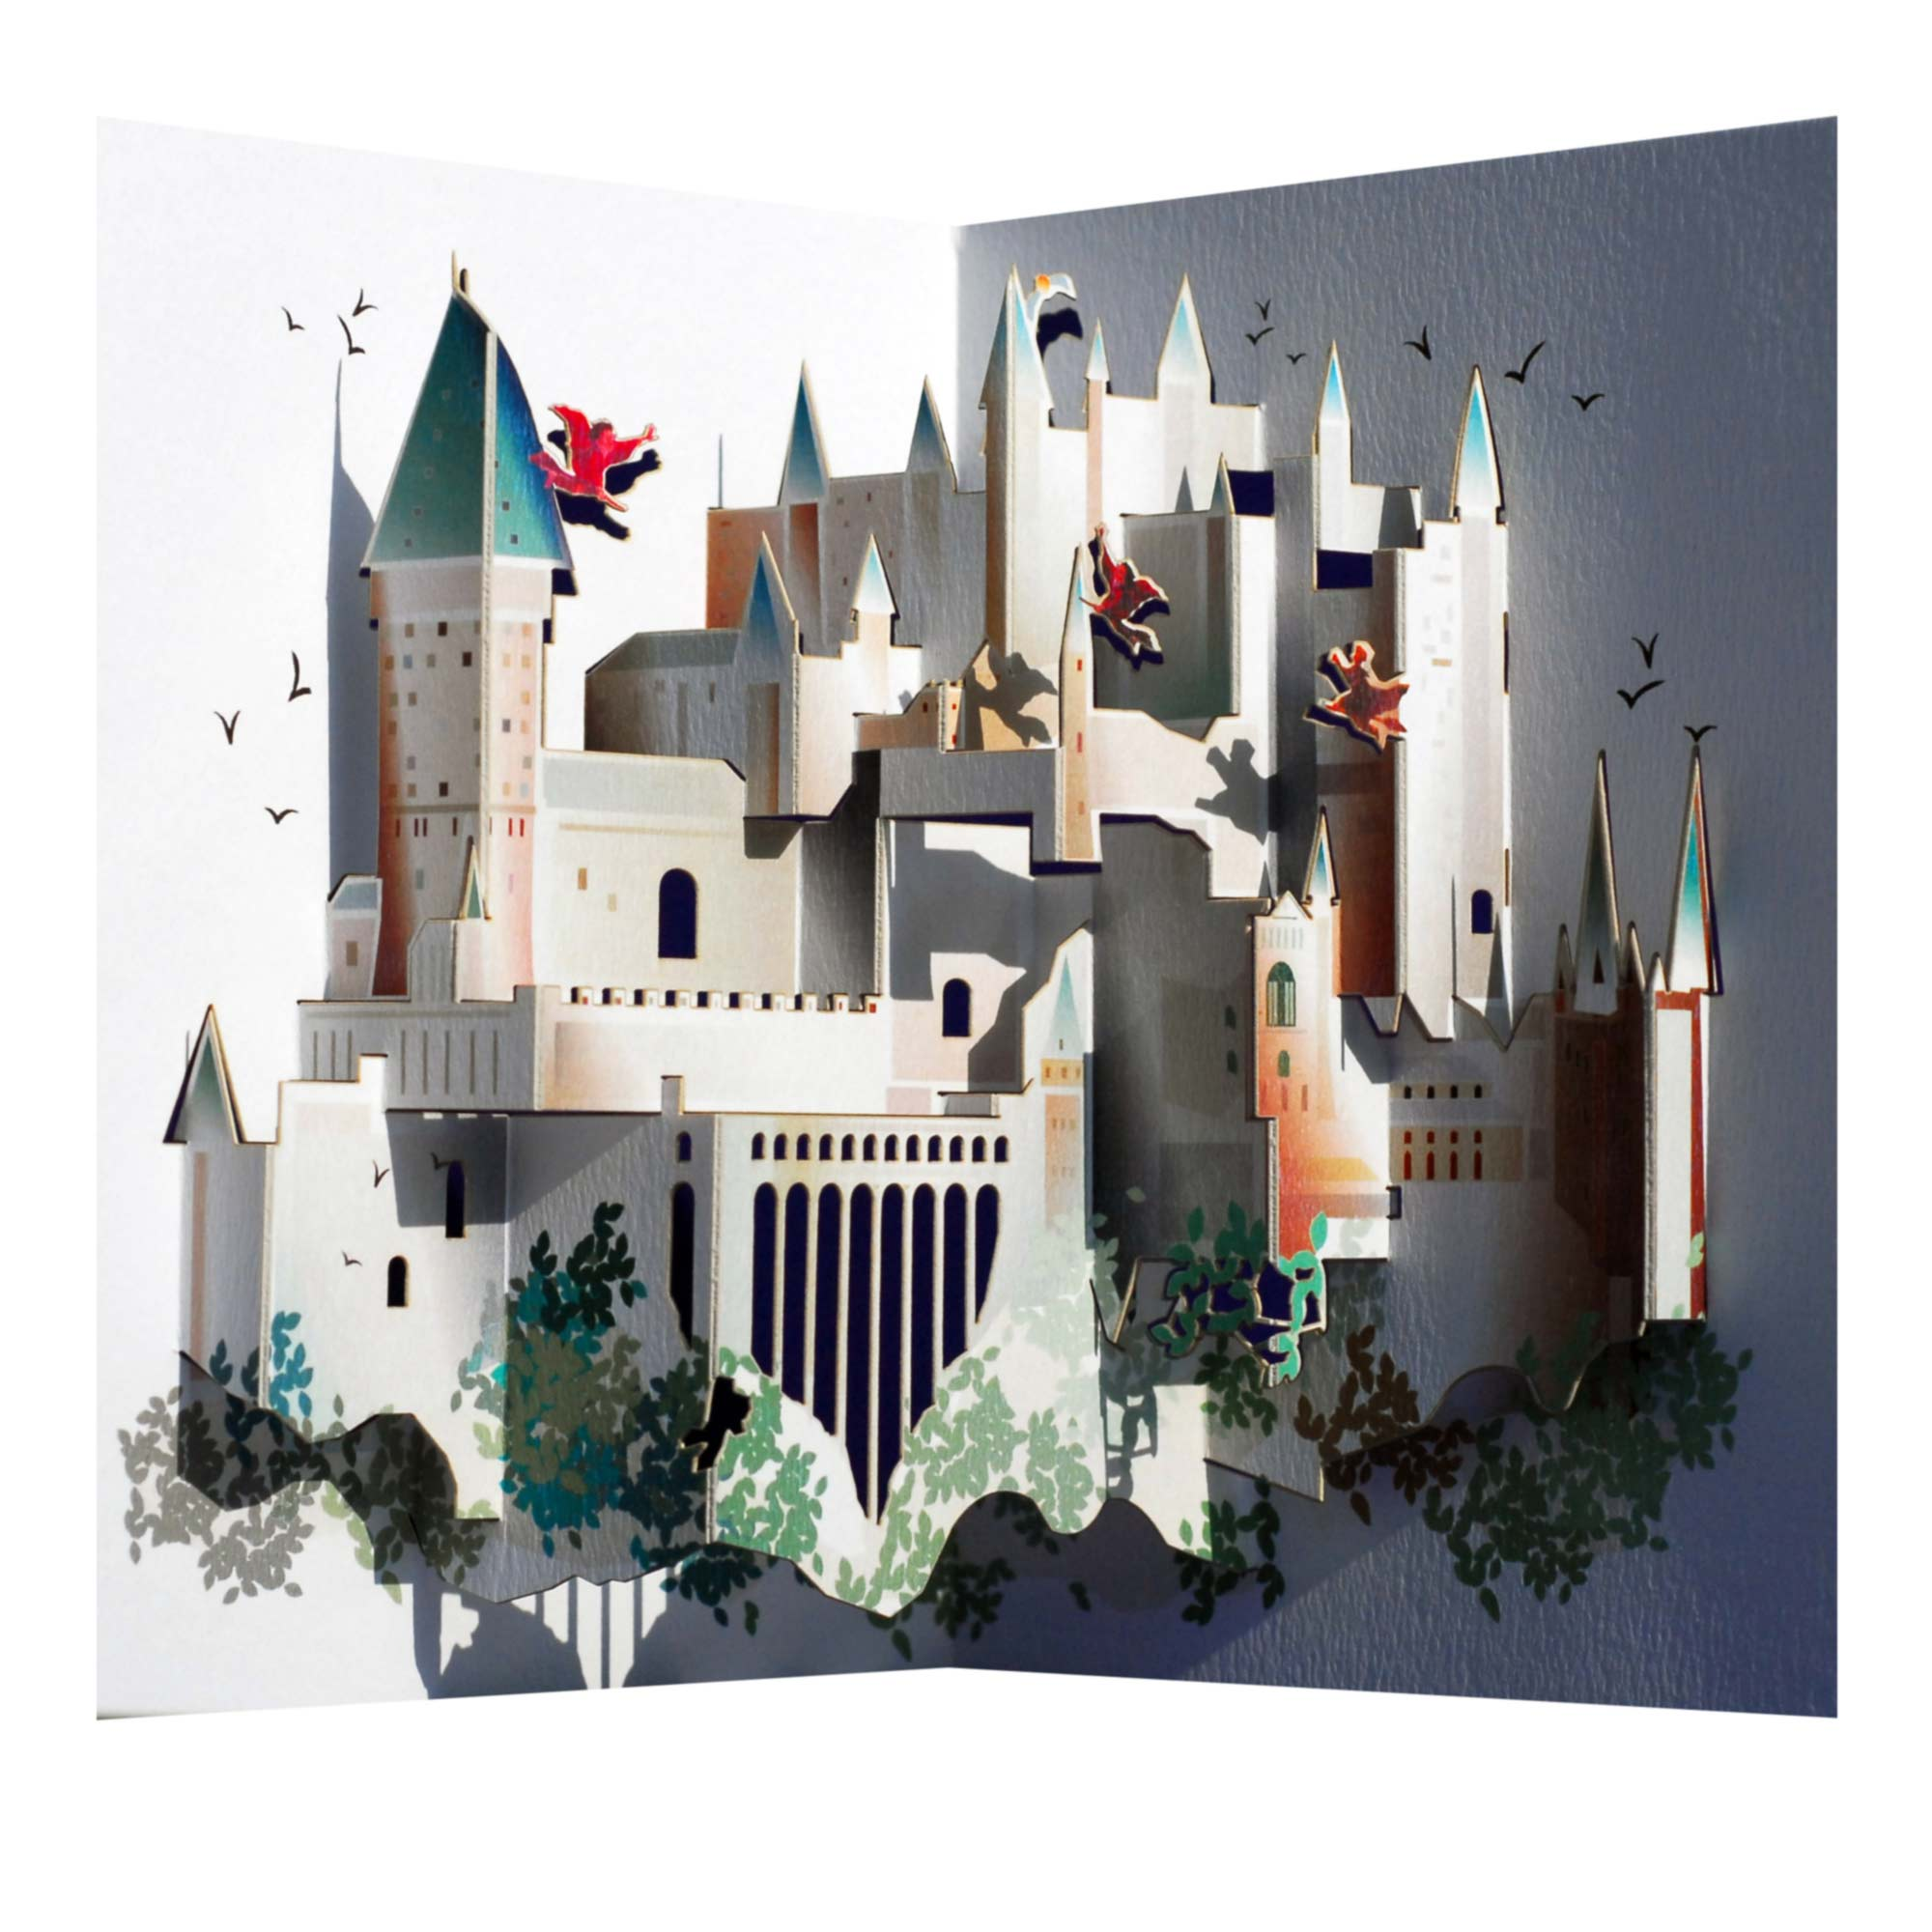 Amazing harry potter hogwarts pop up greeting card by ge feng hogwarts castle amazing pop up greeting card m4hsunfo Image collections